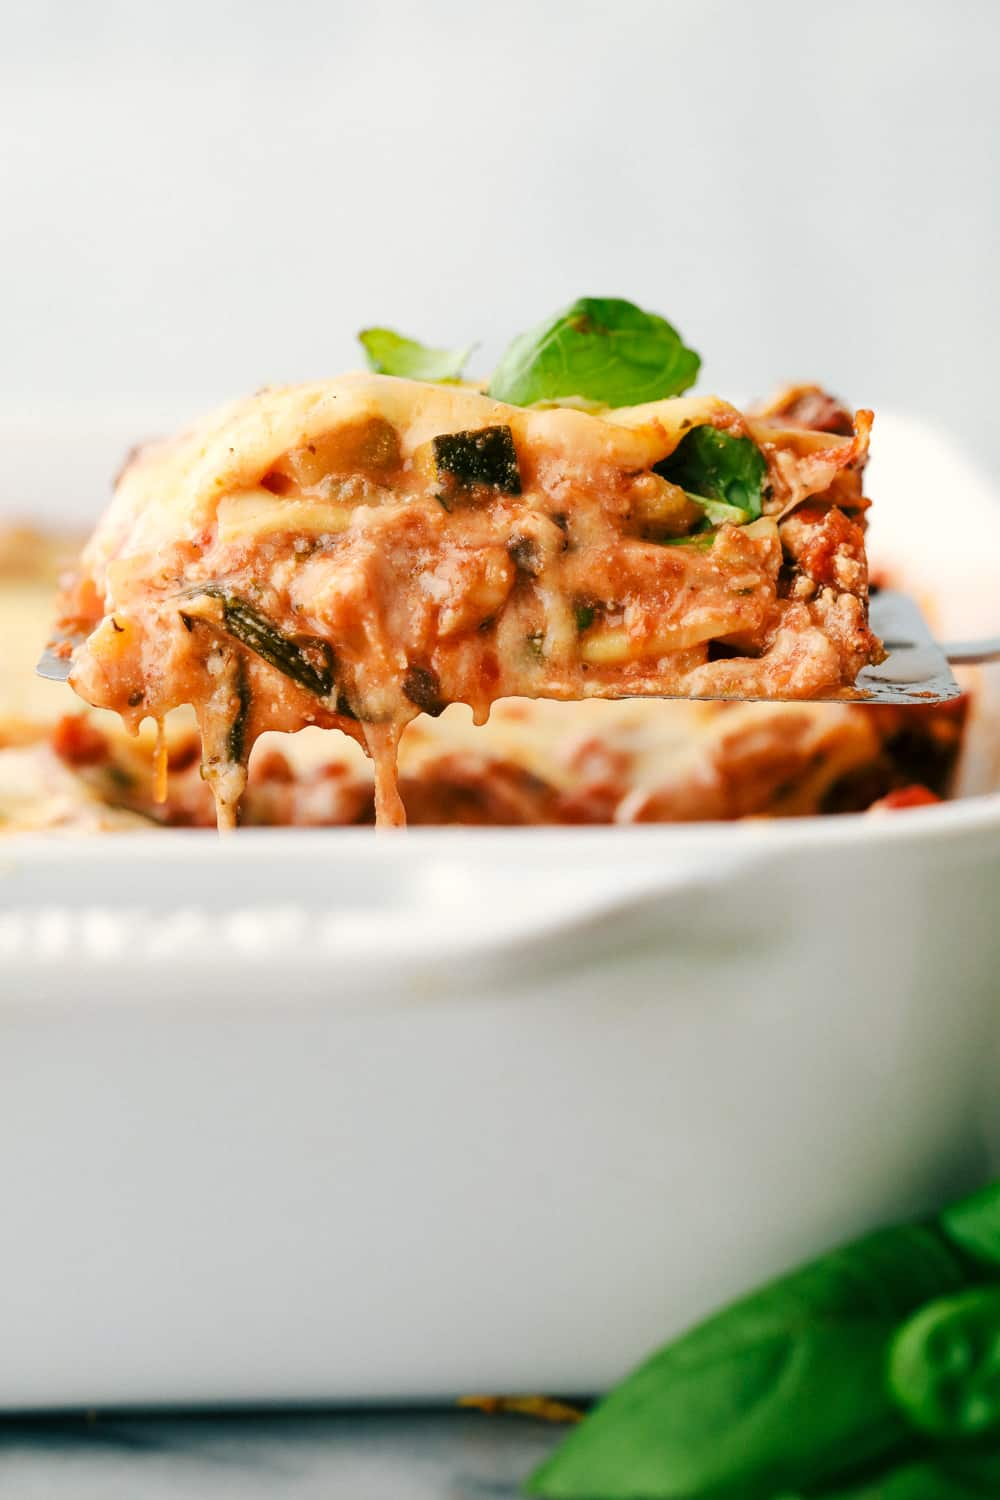 Vegetable Lasagna being scooped out of the dish.